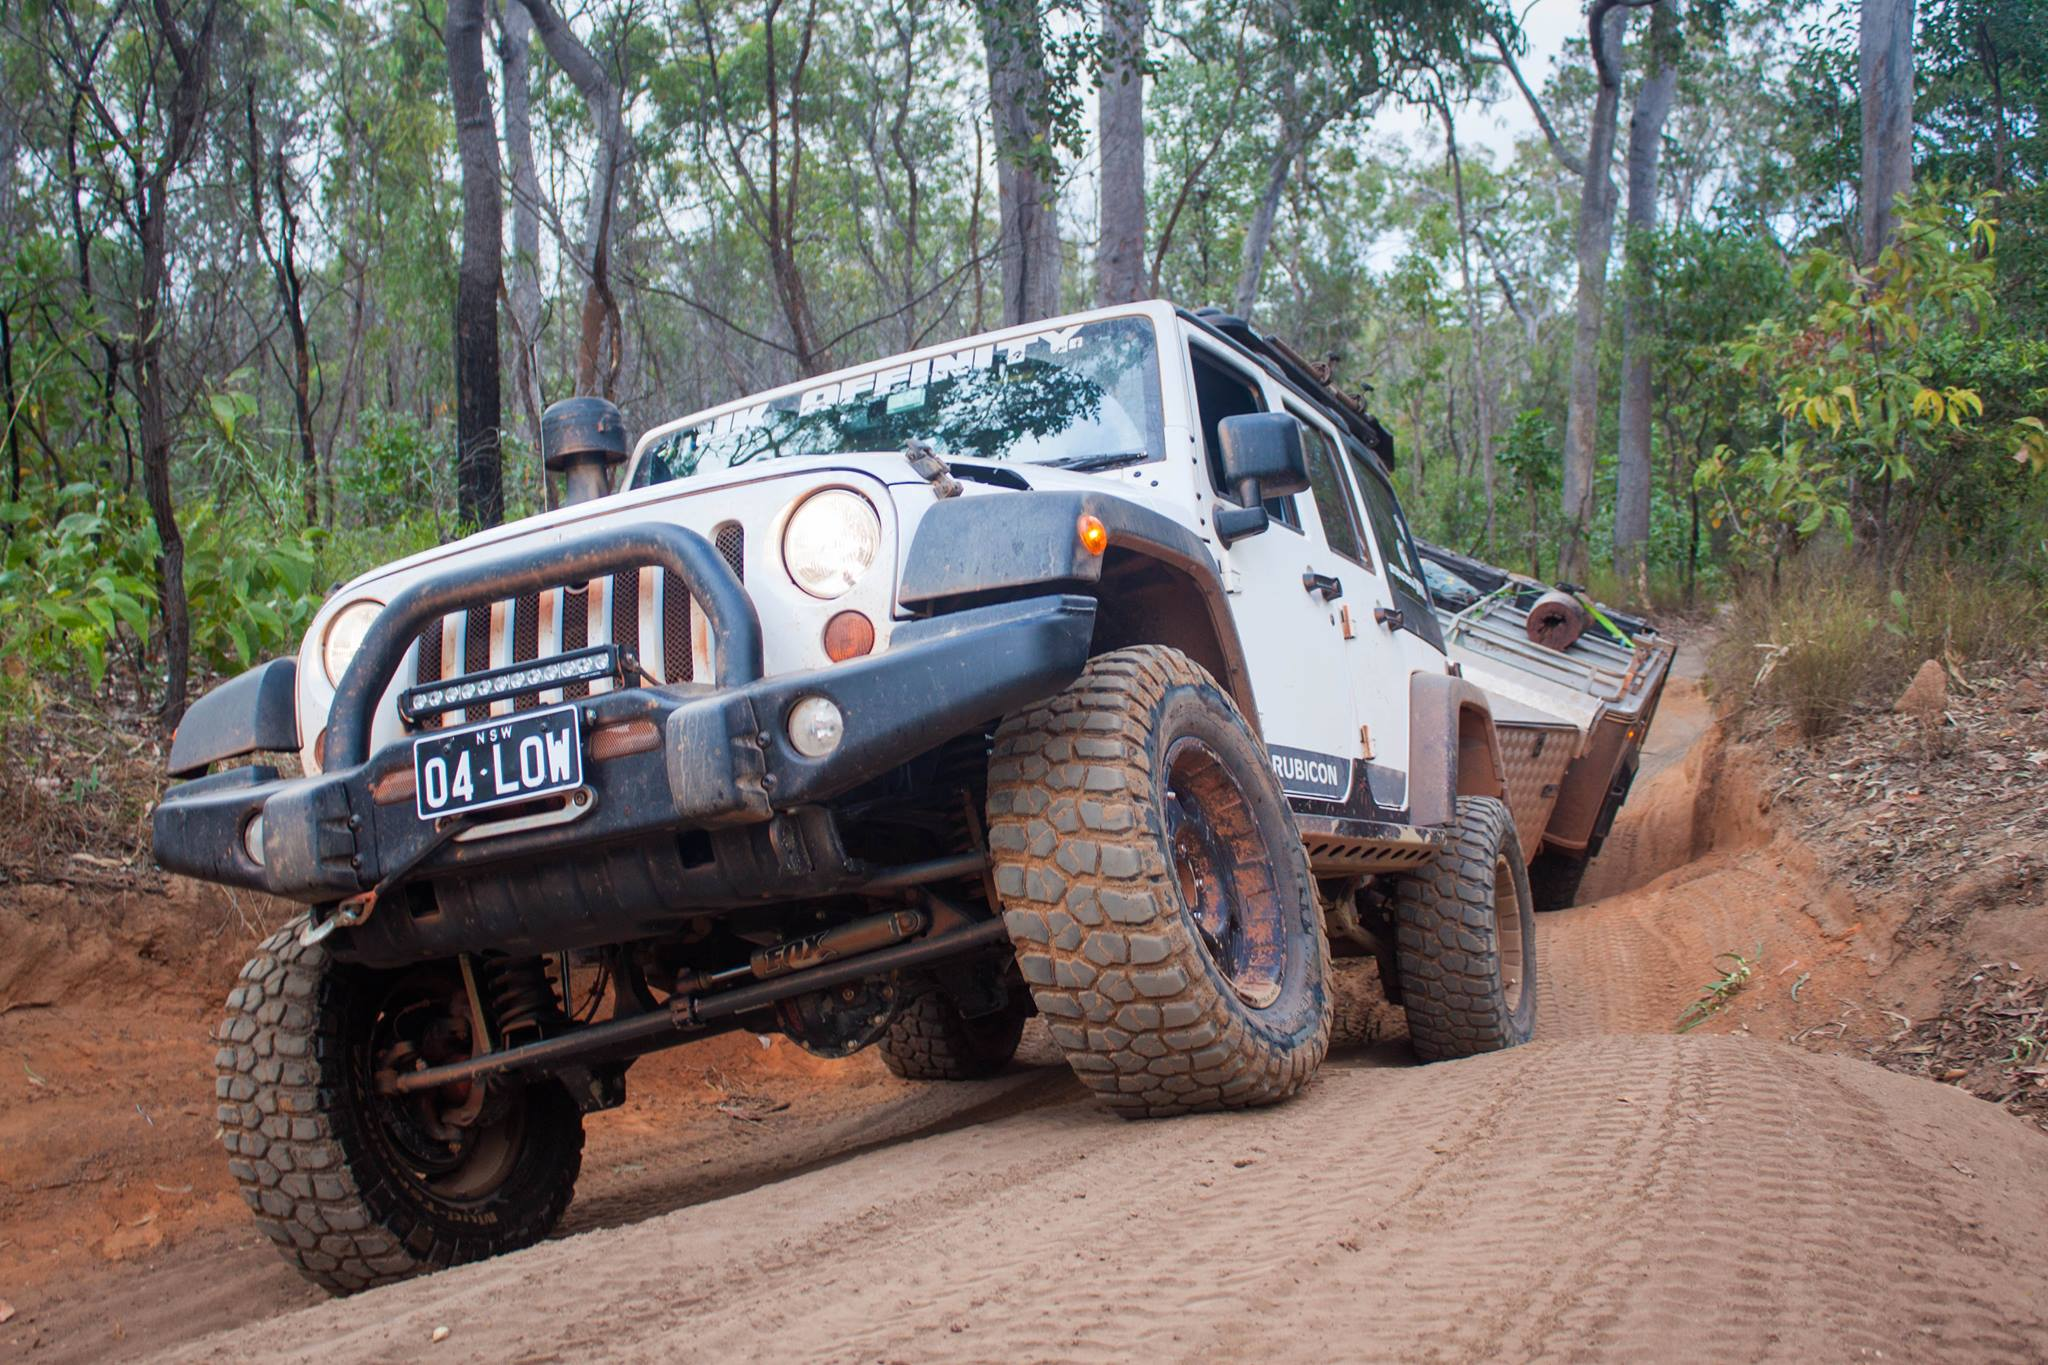 Jeep towing Traylor on uneven ground